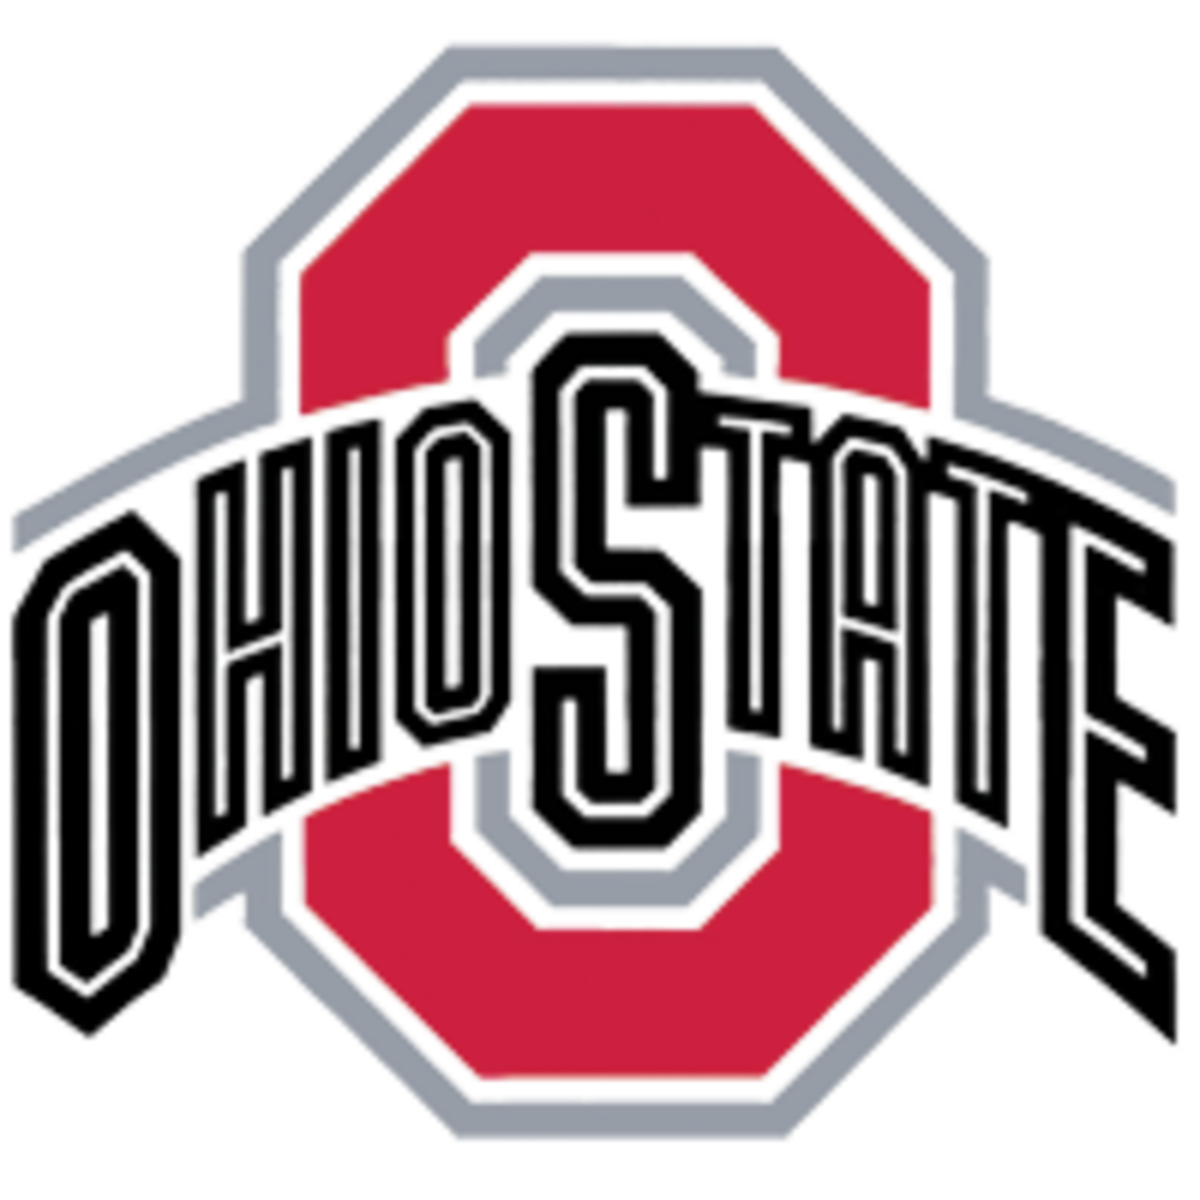 College Football Top 25 Rankings: Ohio State